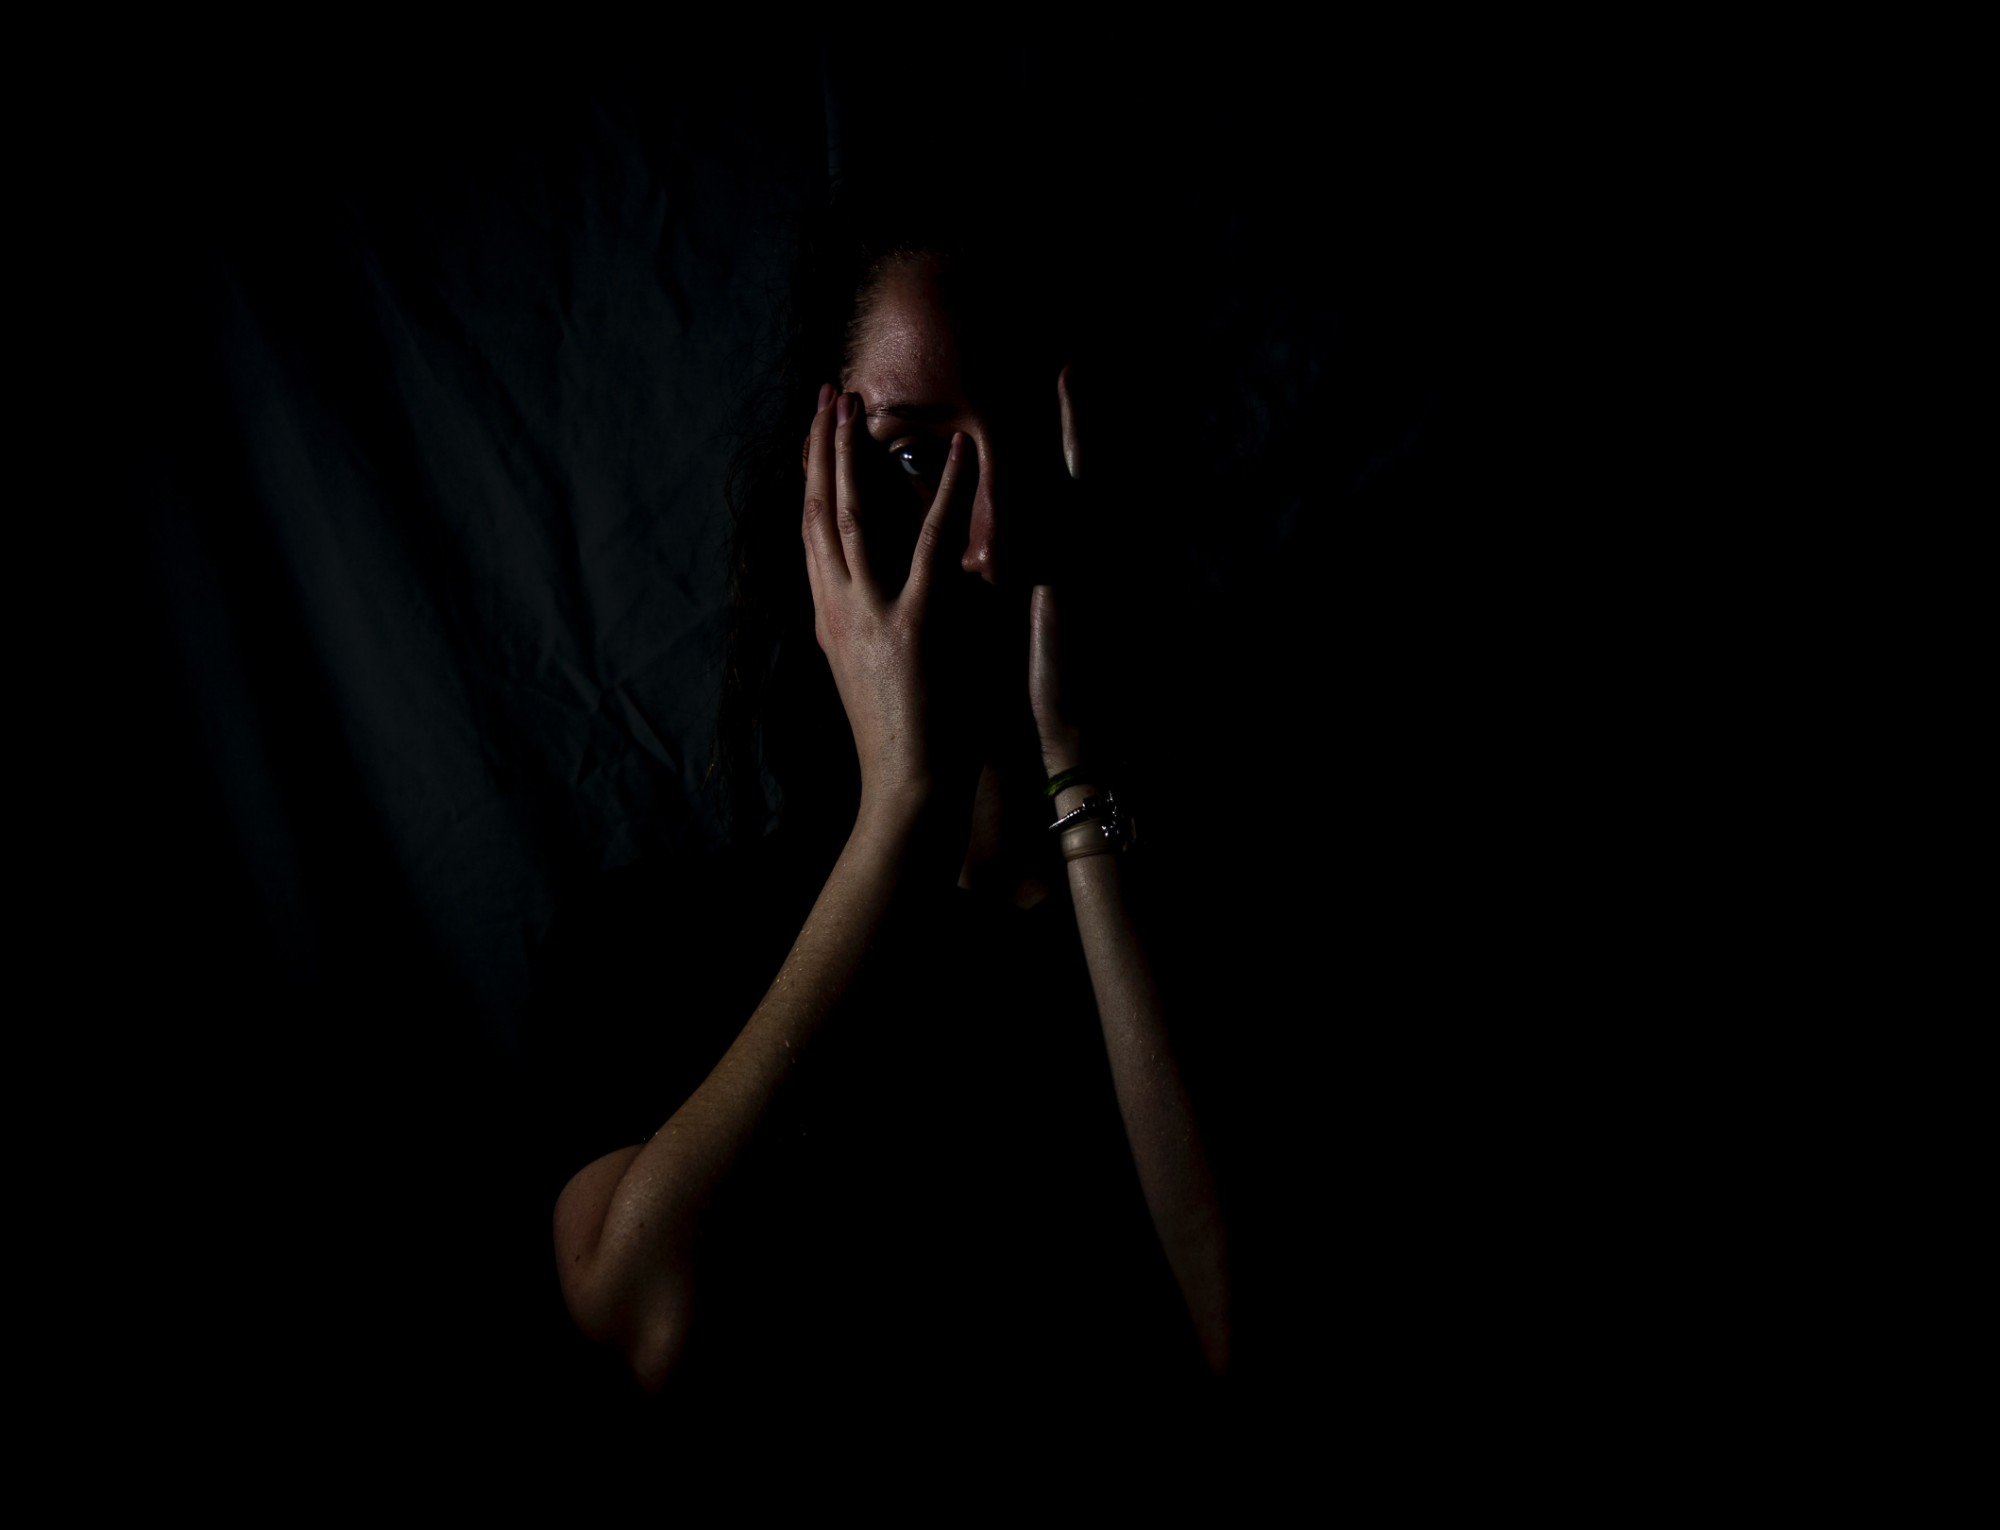 Woman in the shadows, covering her face with her hands